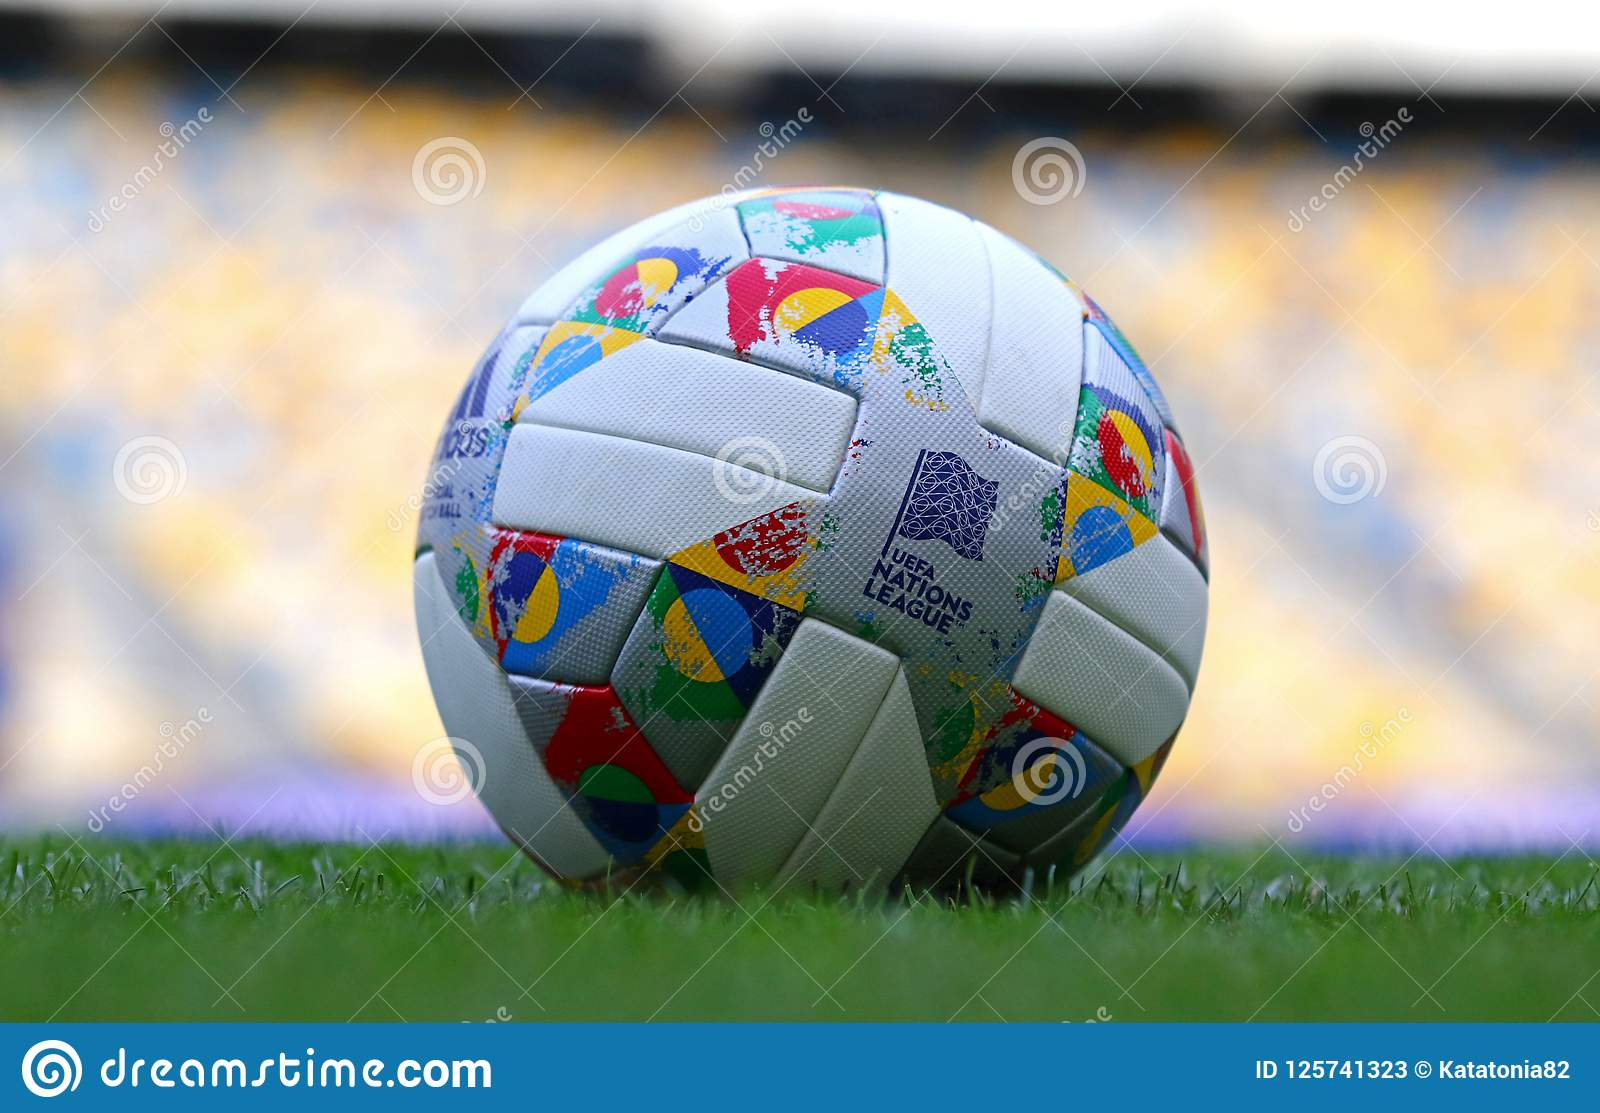 98643434a2 Official Match Ball Of UEFA Nations League 2018 2019 Editorial Stock ...